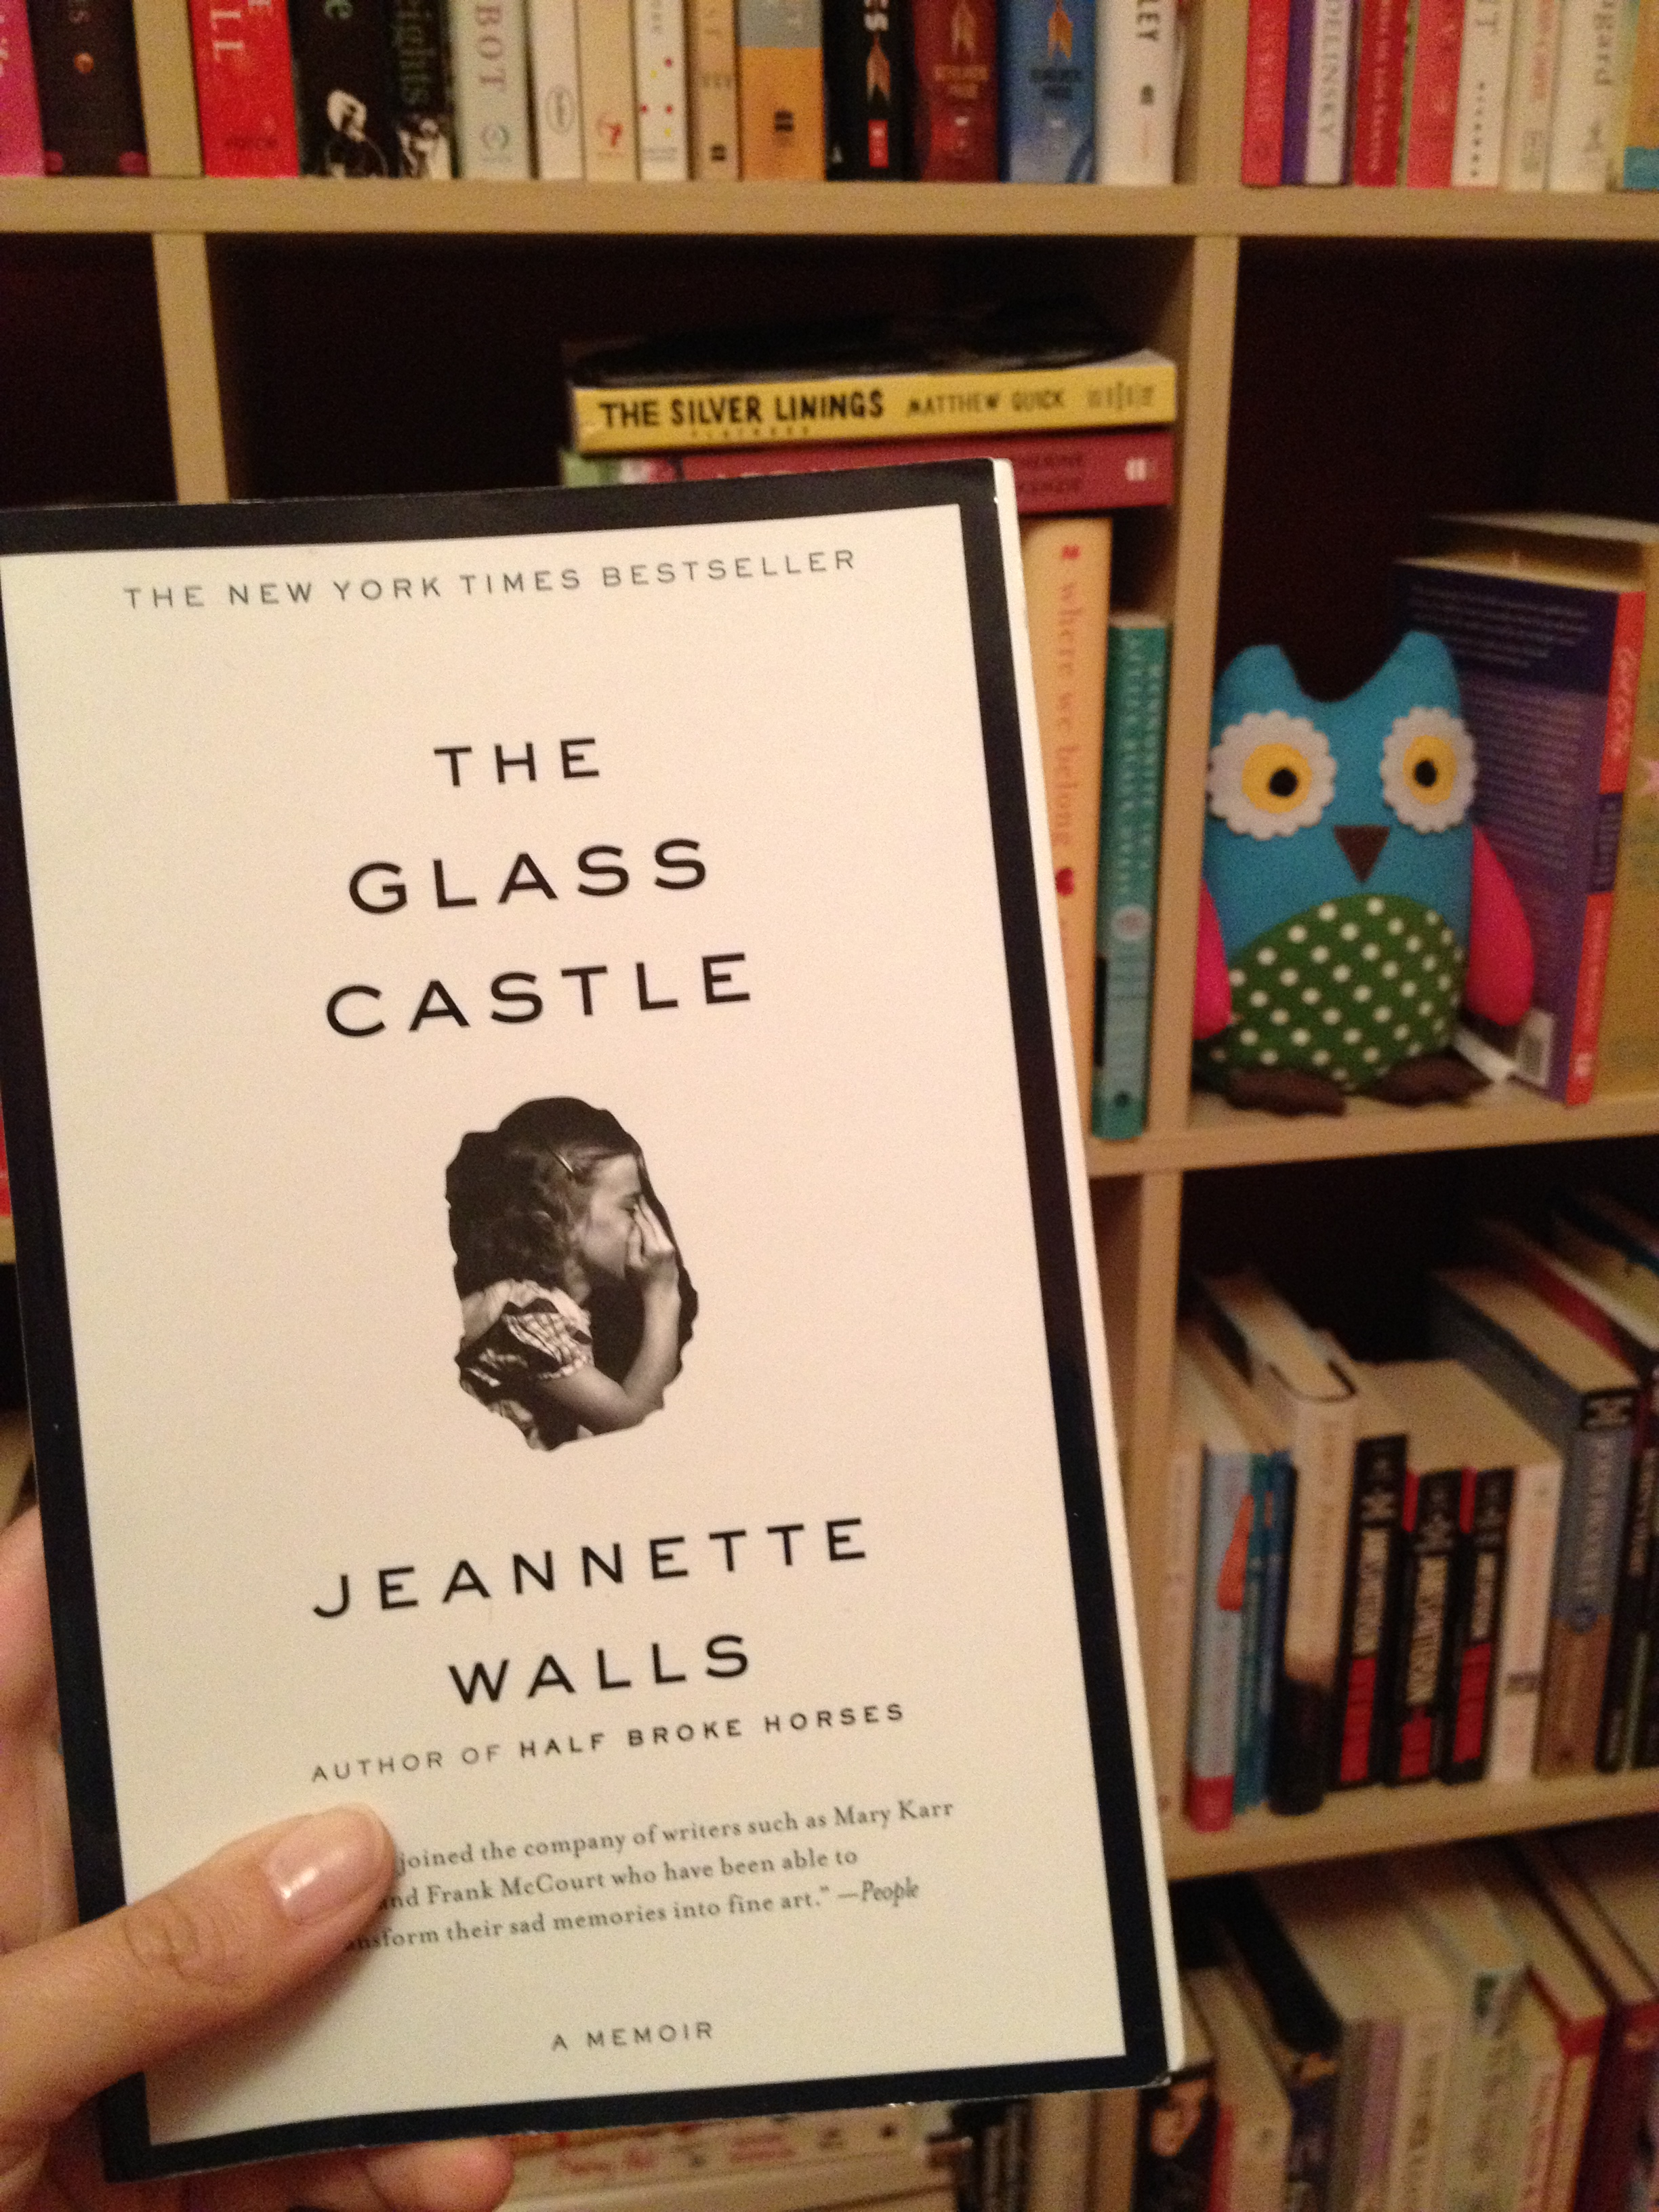 the glass castle analysis In walls' eyes, the best thing a girl can be is strong, motivated, and, most importantly, educated throughout the glass castle, walls uses anecdotes, figurative language, and a repetition of words that proves her stance is one that plainly contradicts daisy's statement about what furthers the life of women.